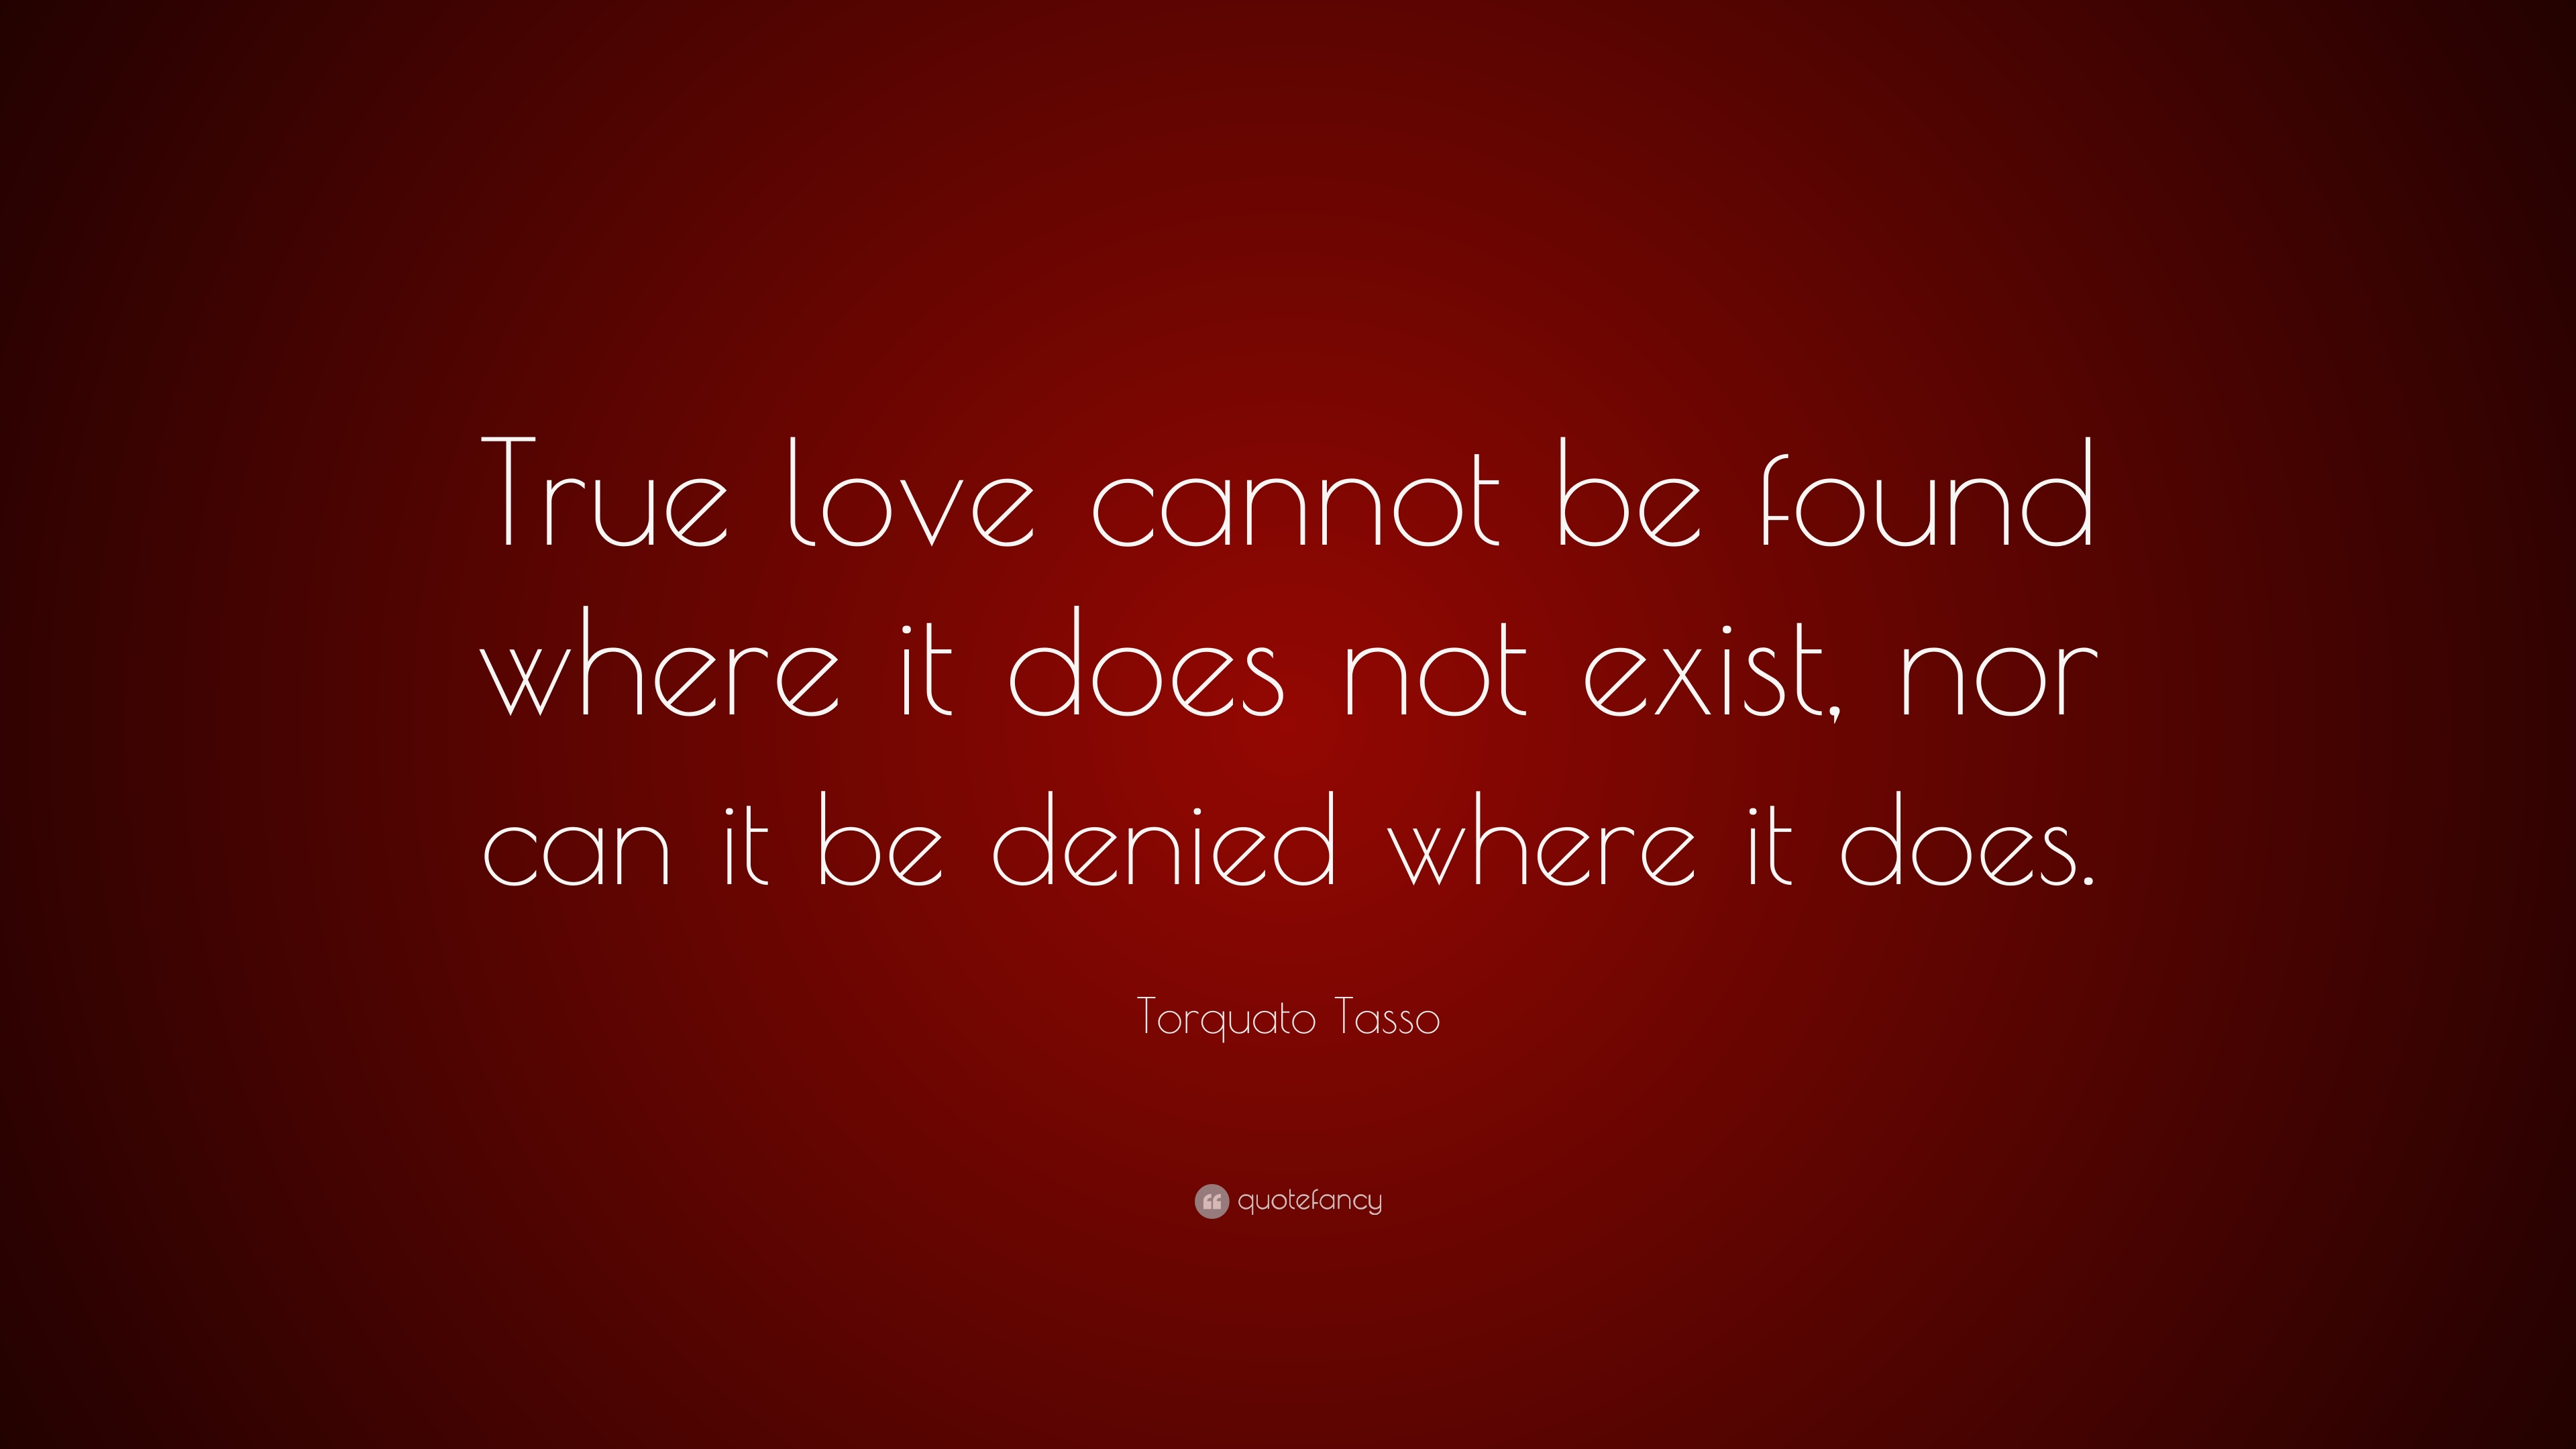 Torquato Tasso Quote True Love Cannot Be Found Where It Does Not Exist Nor Can It Be Denied Where It Does 7 Wallpapers Quotefancy